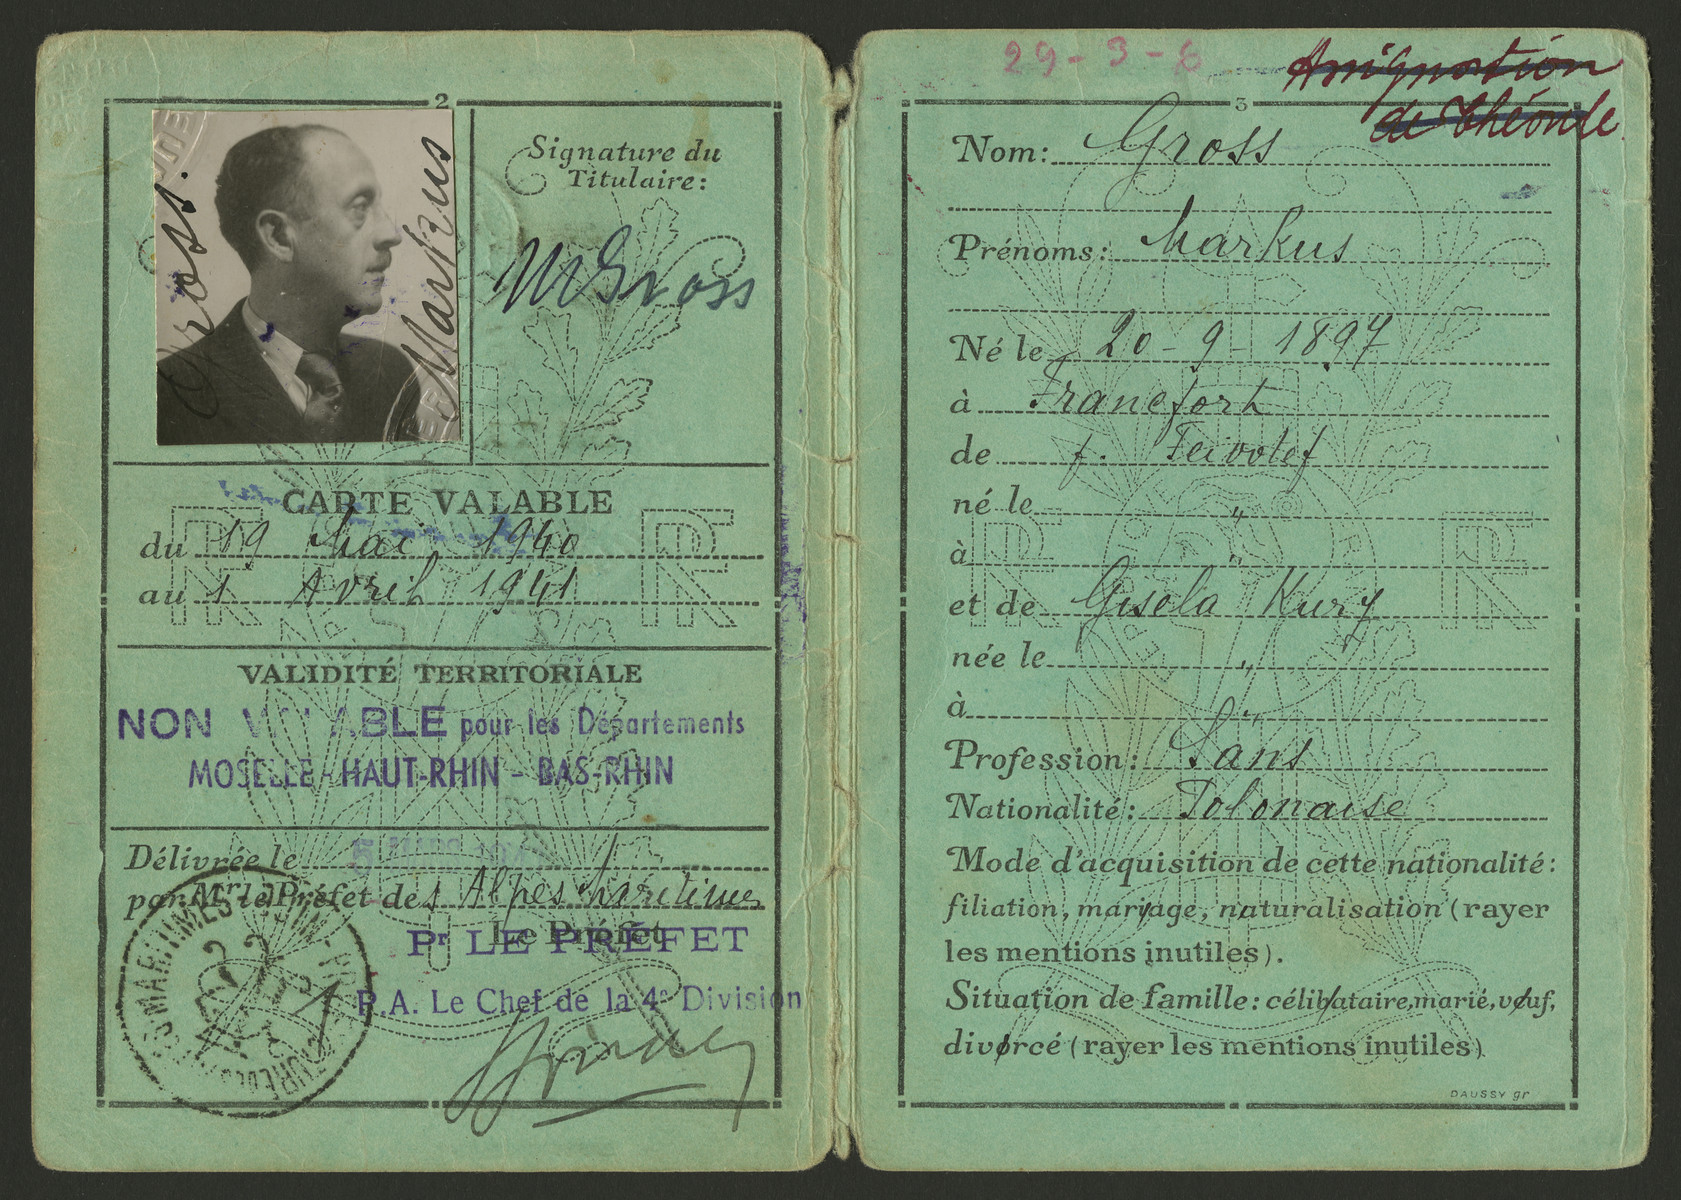 Identification card issued to Markus (Max) Gross in the Alpes-Maritimes department.  The papser states that it is not valid in thedepartments of Moselle, Haute Rhin and Bas Rhin.